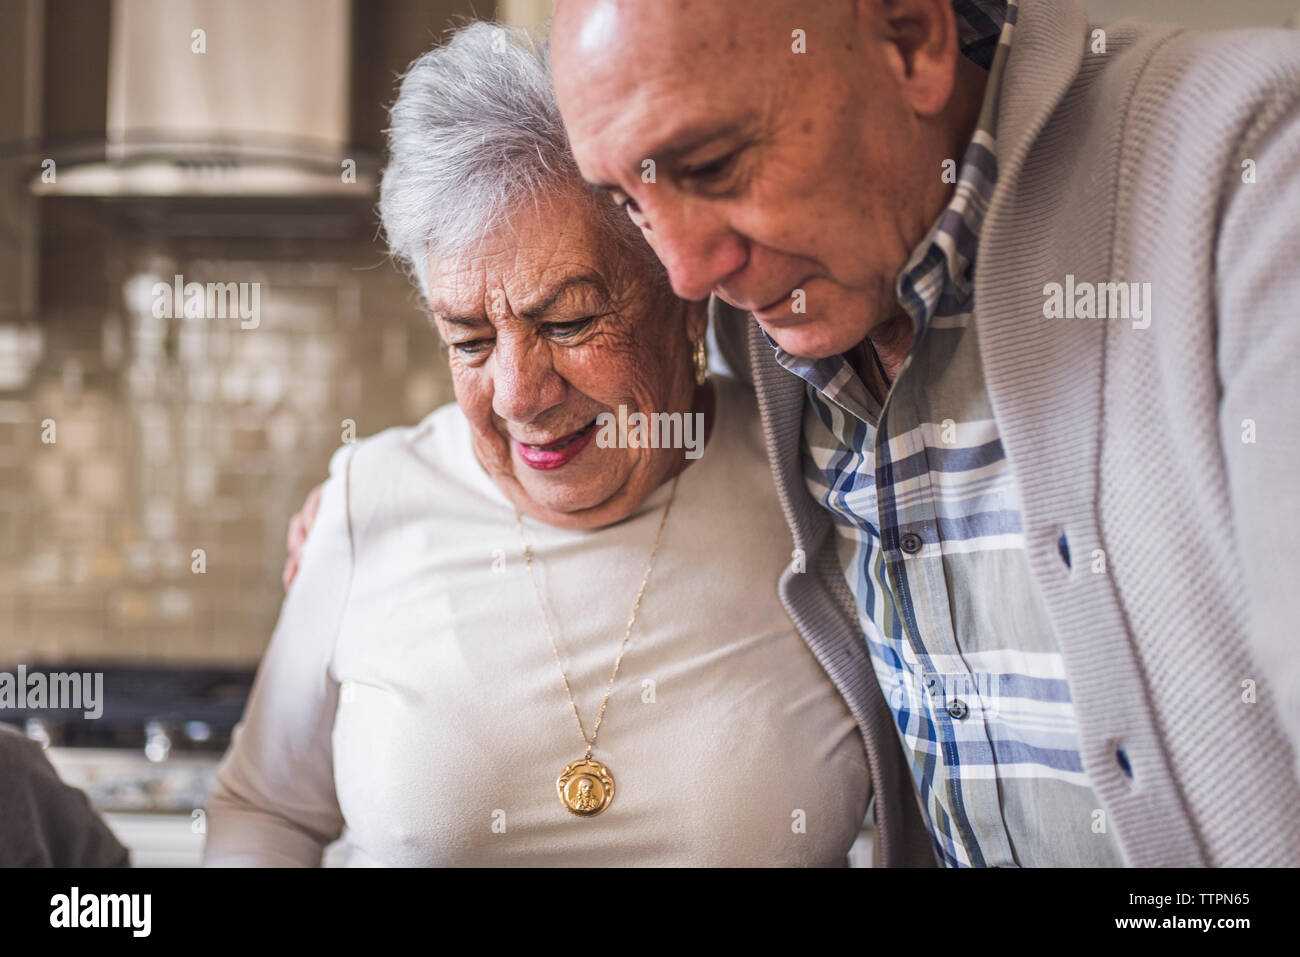 Close of of adult son hugging senior mother in kitchen Stock Photo